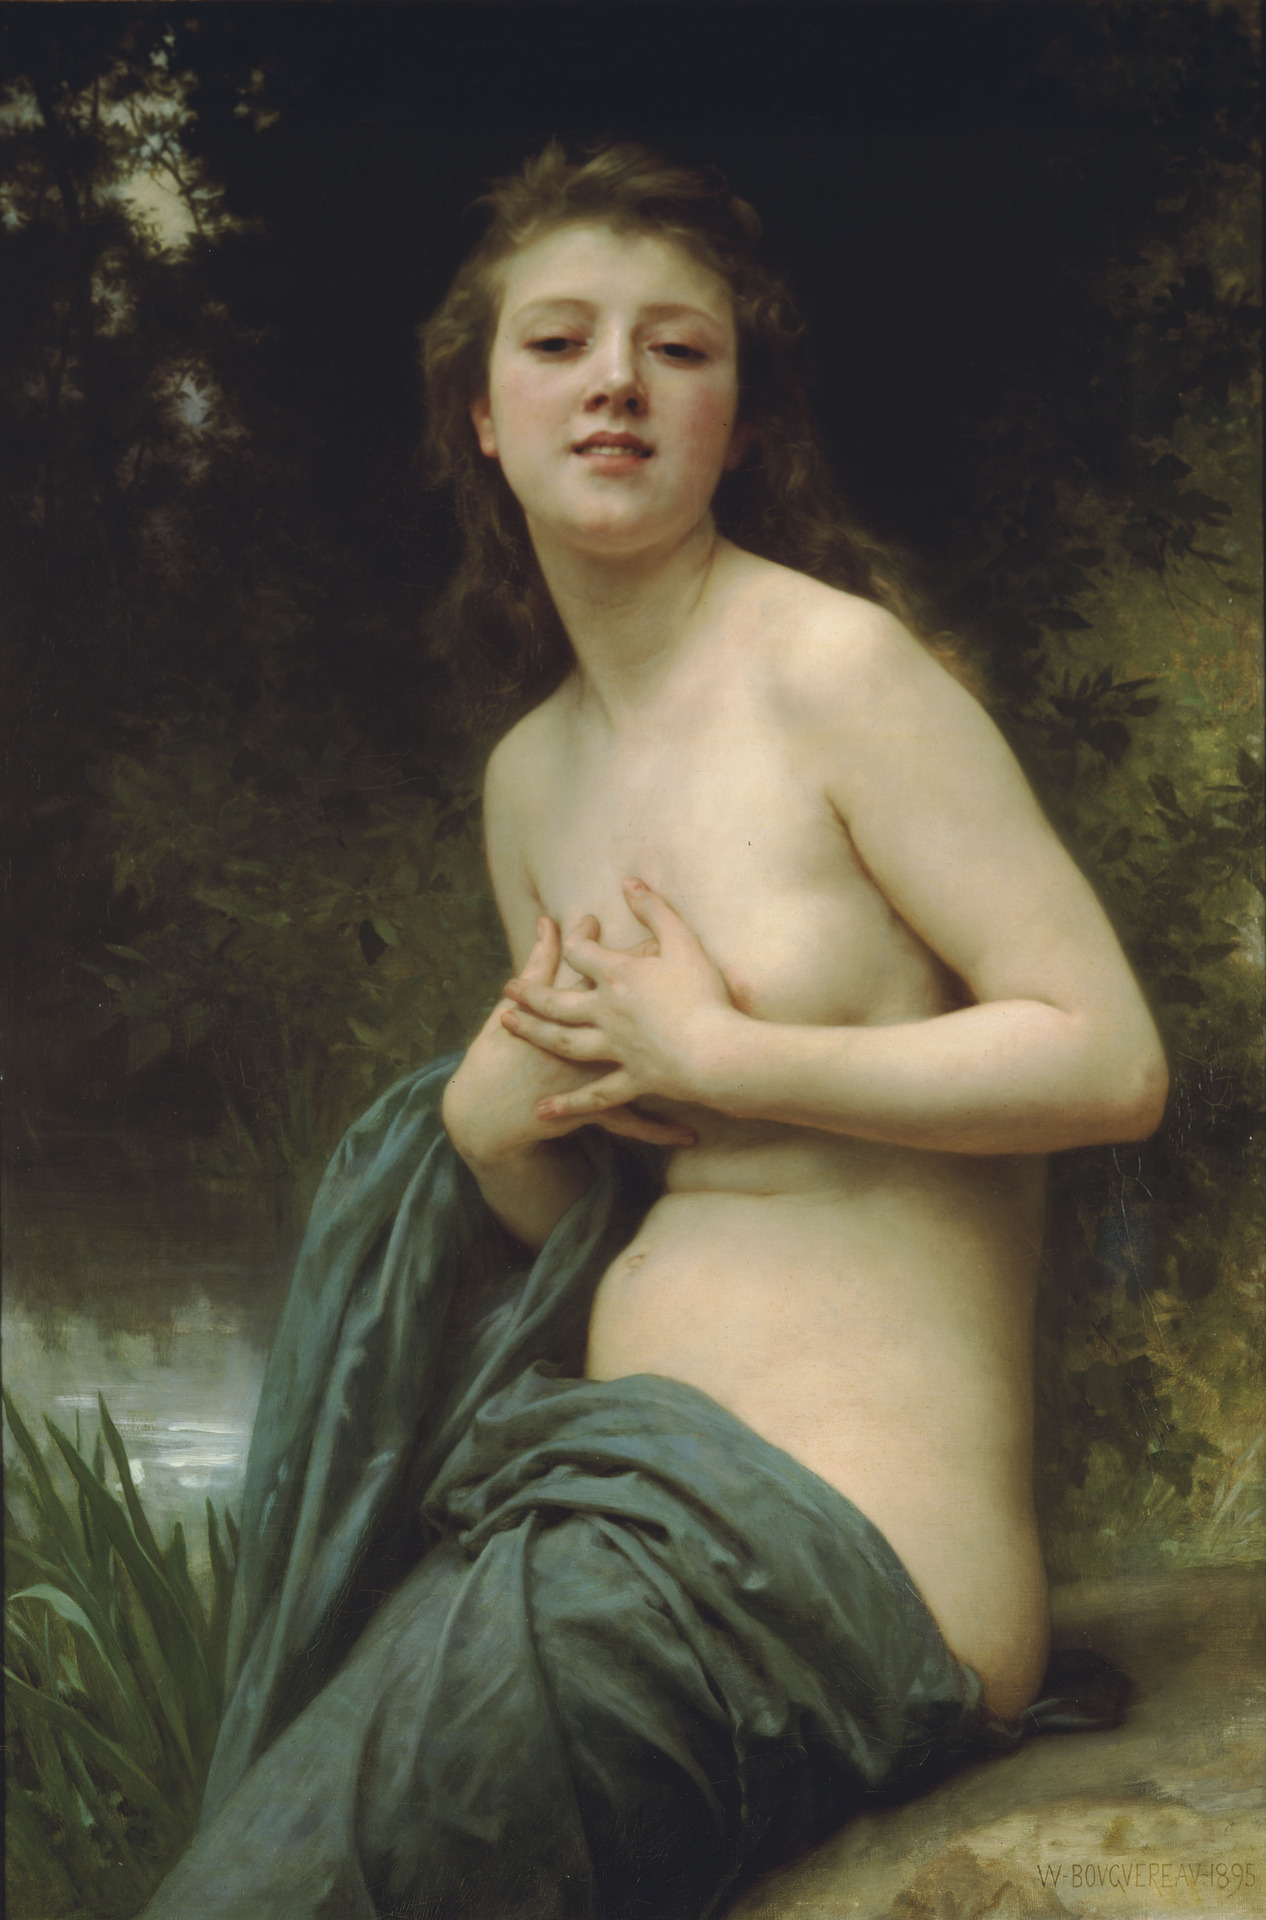 Spring Breeze (1895). Adolphe William Bouguereau (French, Realism, Academic, 1825-1905). Oil on canvas. Along with Cabanel, Bouguereau was the most influential upholder of the conservative values of French academic art in his day. His paintings stress those values: precise drawing, contour, and finish, along with strict adherence to the rules of anatomy, perspective, academic modeling, and physiognomic expression in which internal character is revealed by outward appearance.